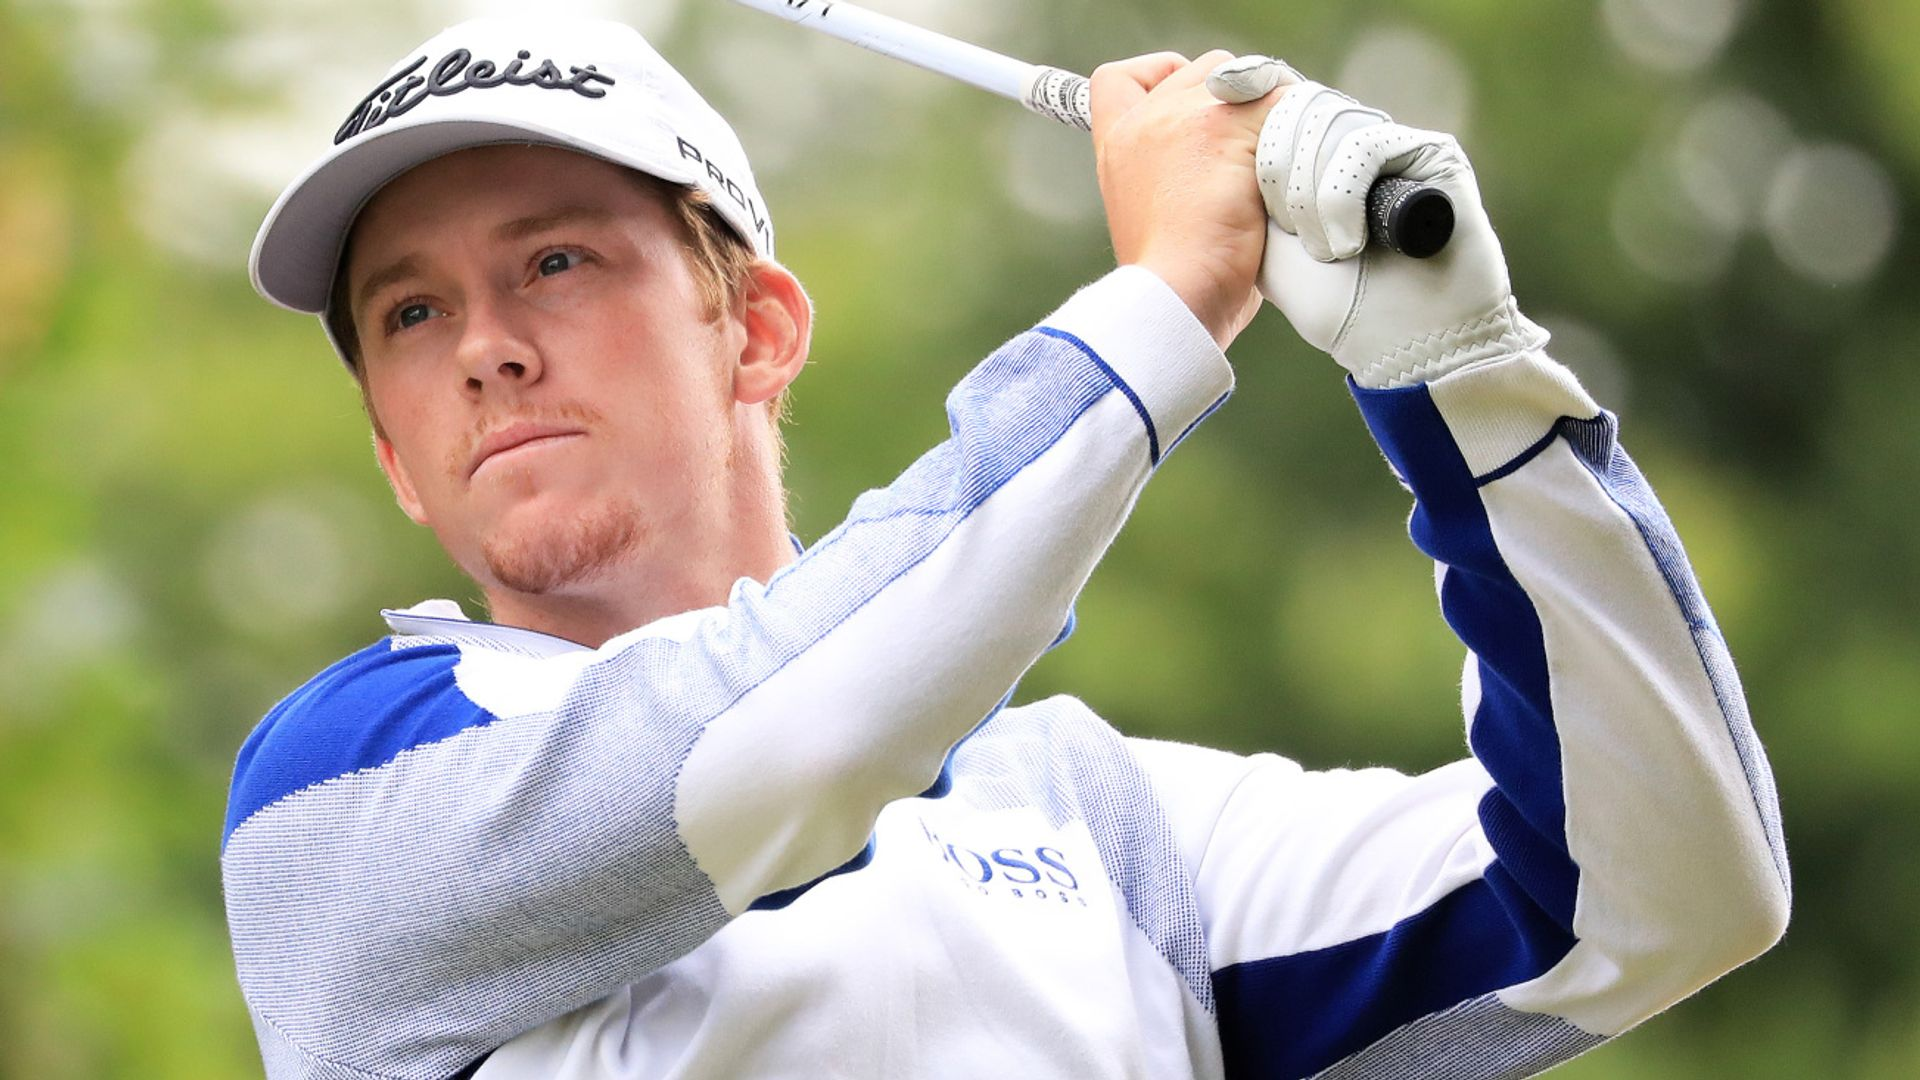 Hillier leads Smith at ISPS Handa